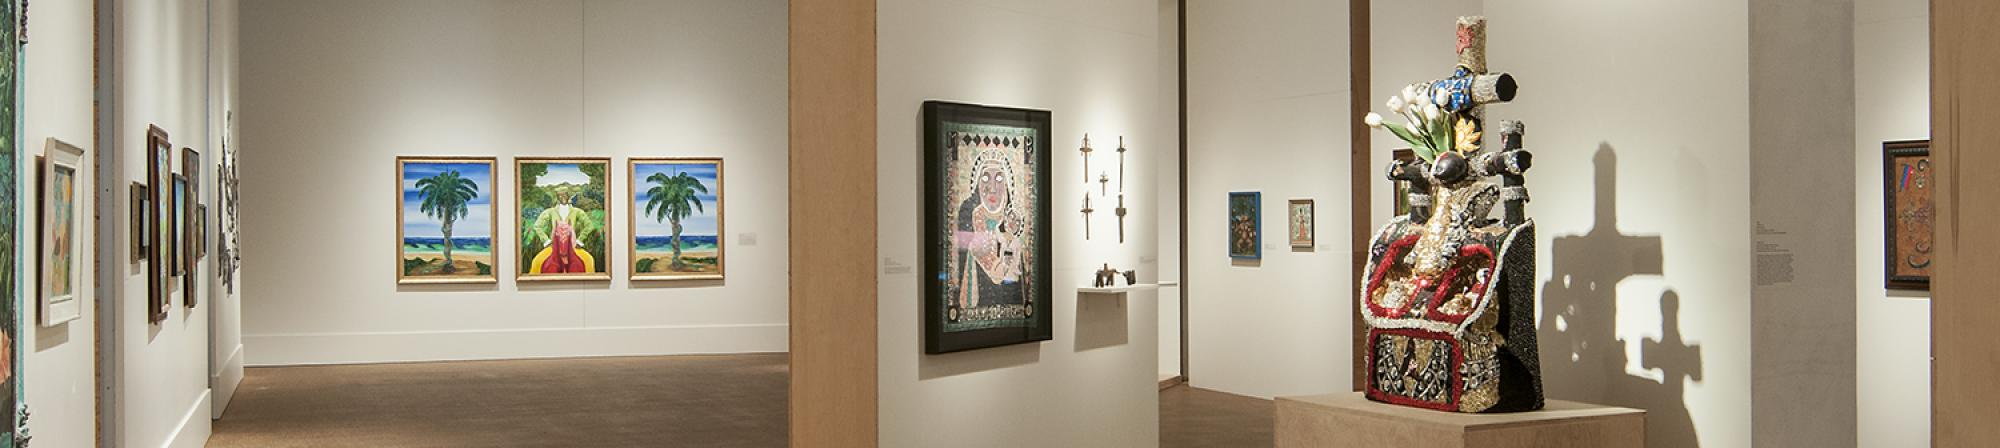 Works from En Voyage: Hybridity and Vodou in Haitian Art on display in Grinnell College Faulconer Gallery